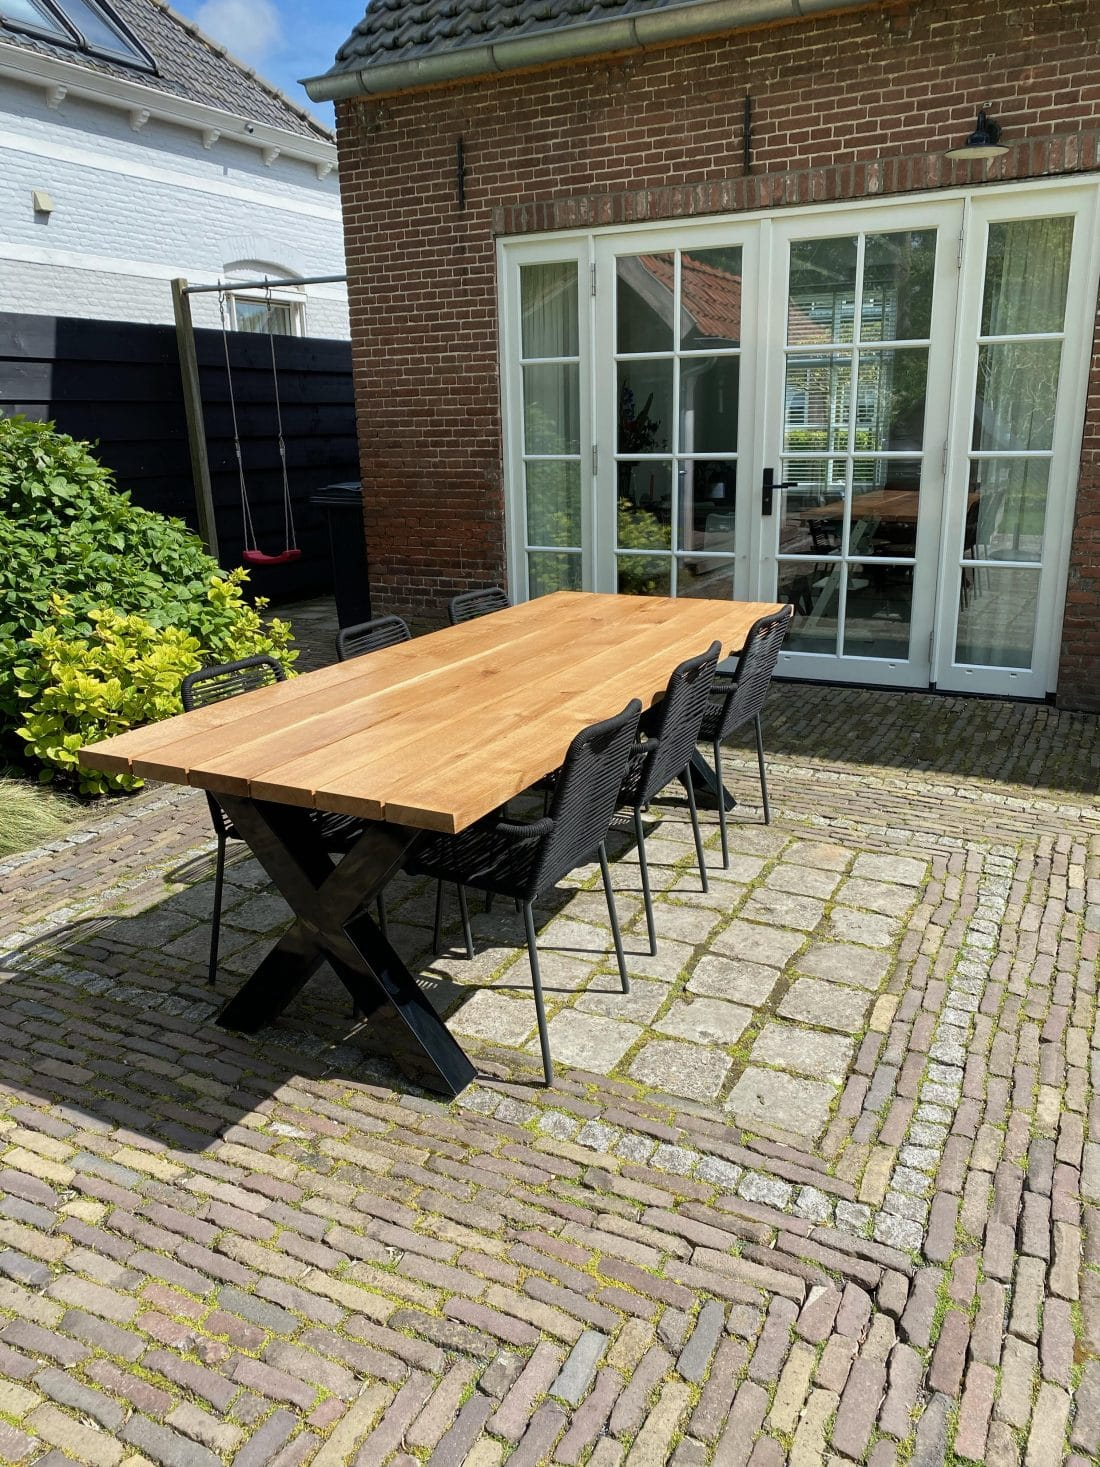 Trp Post Container Data Trp Post ID 37690 Oak Garden Table Radom X Trp Post Container